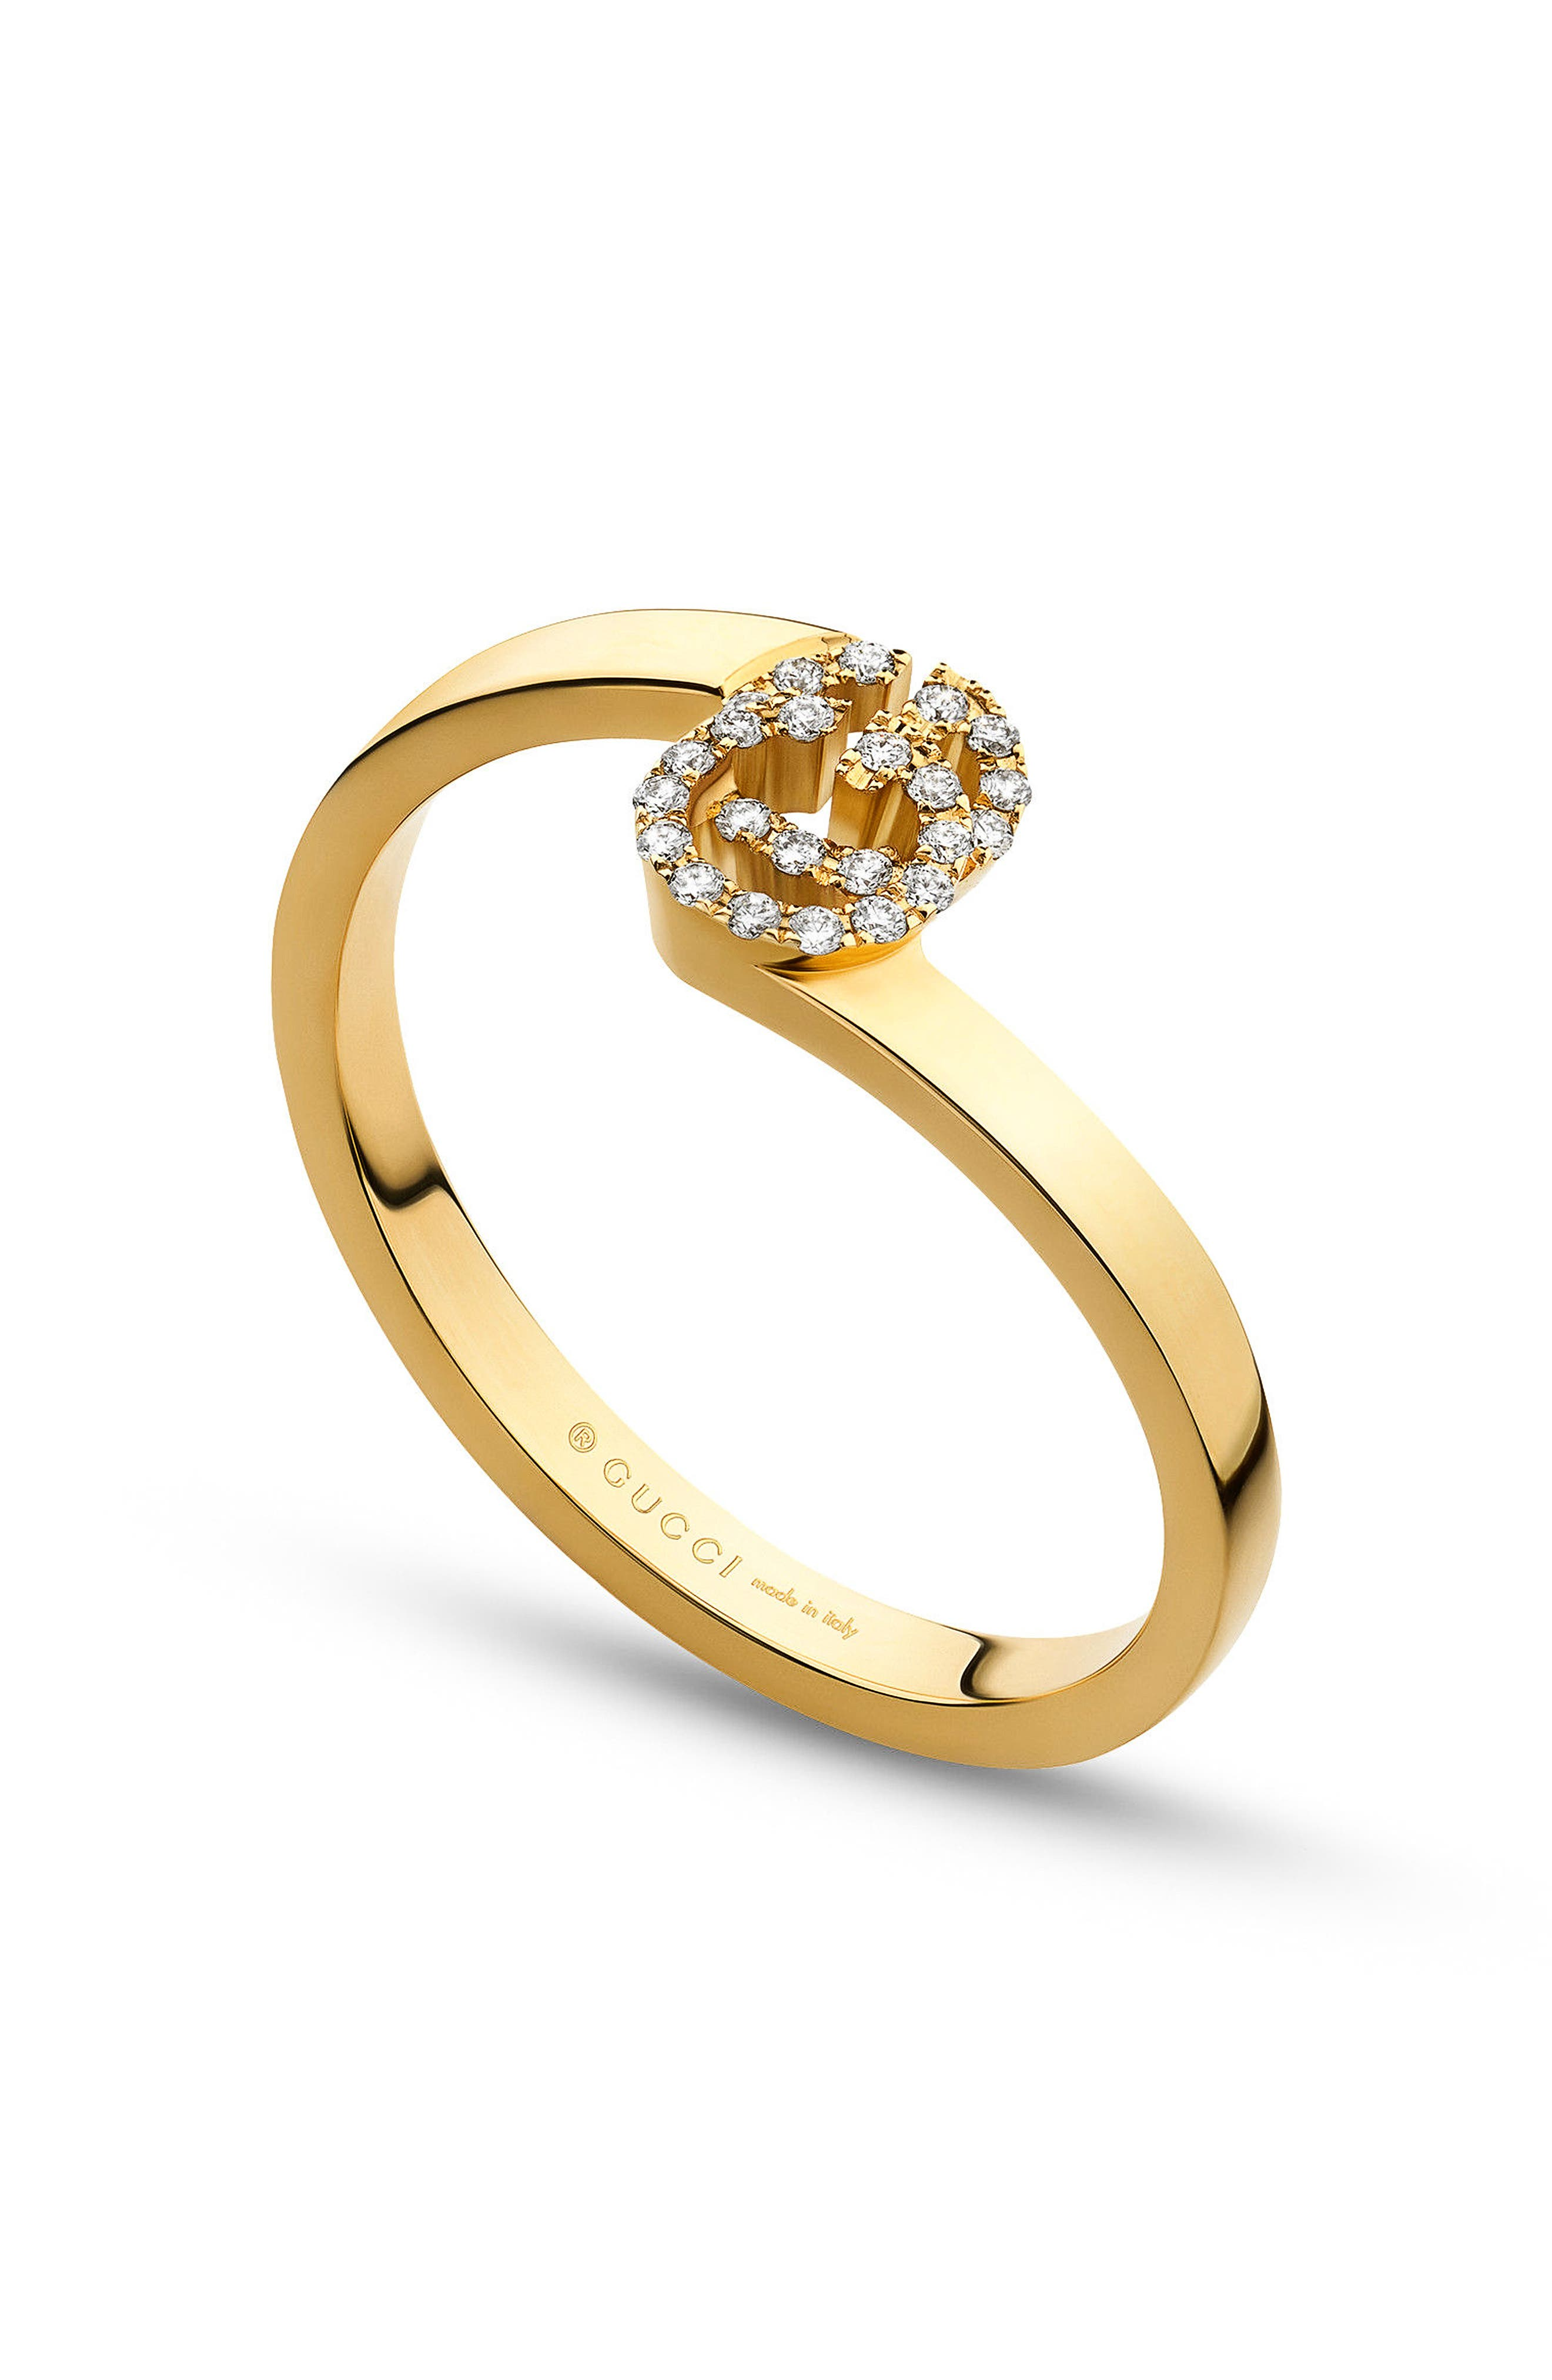 Double-G Diamond Stack Ring,                             Main thumbnail 1, color,                             YELLOW GOLD